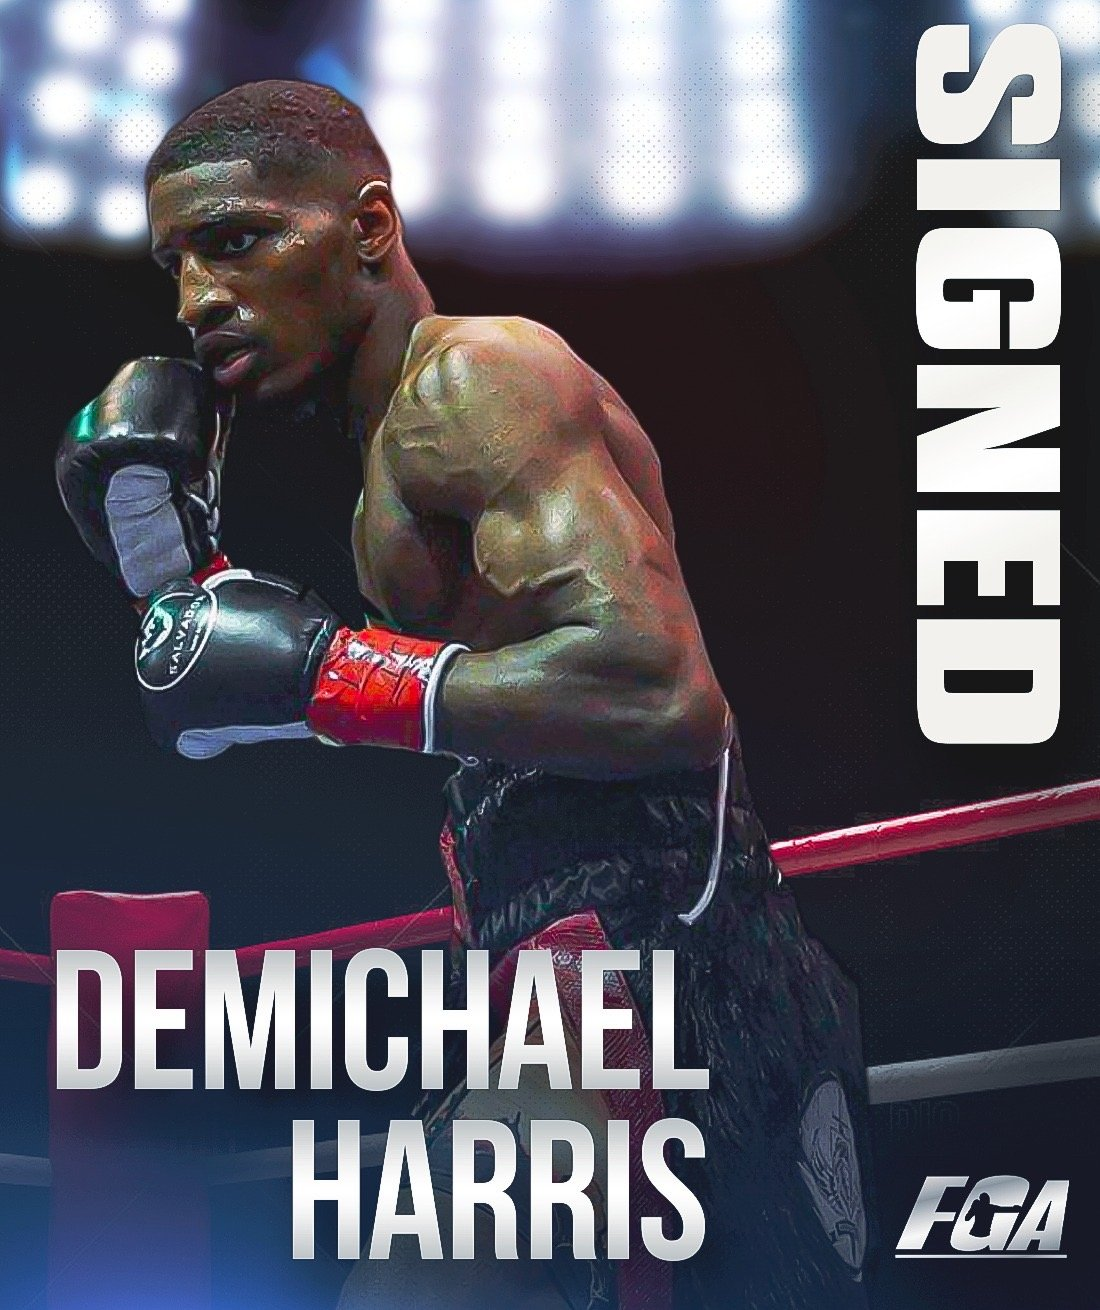 DeMichael Harris - Peter Kahn's Fight Game Advisors has announced the signing of heralded super featherweight prospect DeMichael Harris, 3-0, 3 KOs), of Atlanta, Georgia.